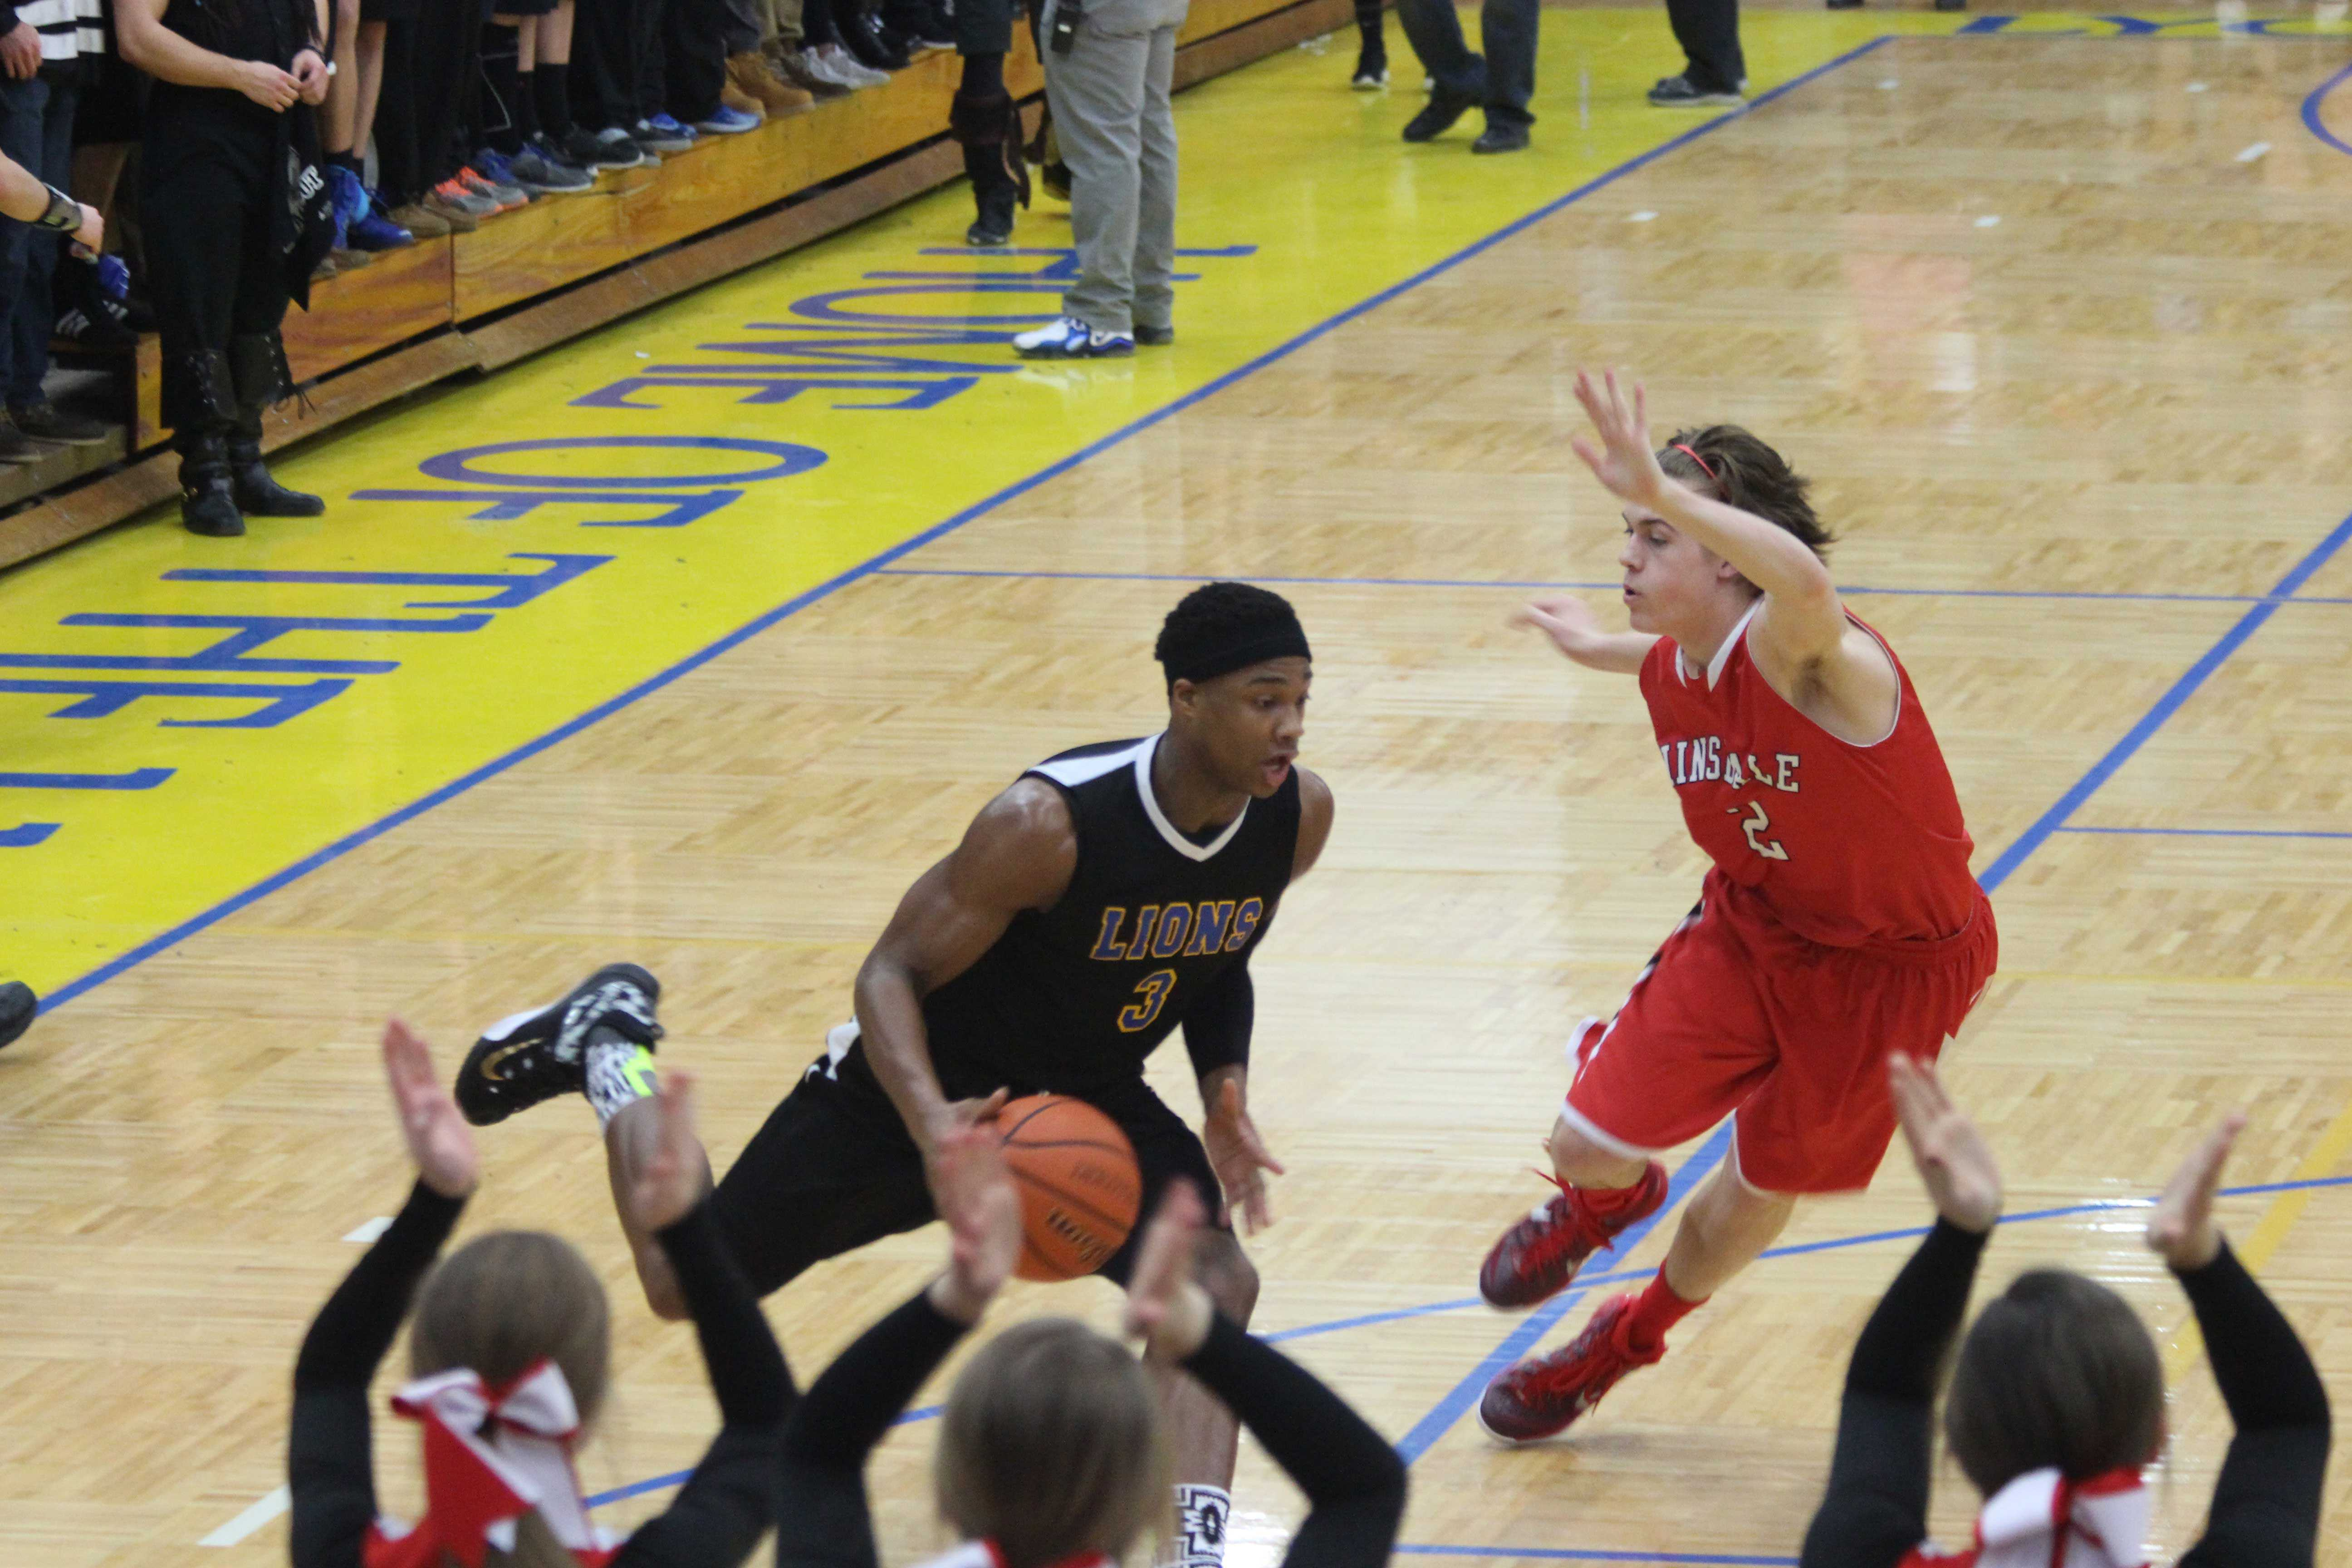 Jaquan Phipps '15 drives on a Hinsdale Central defender.